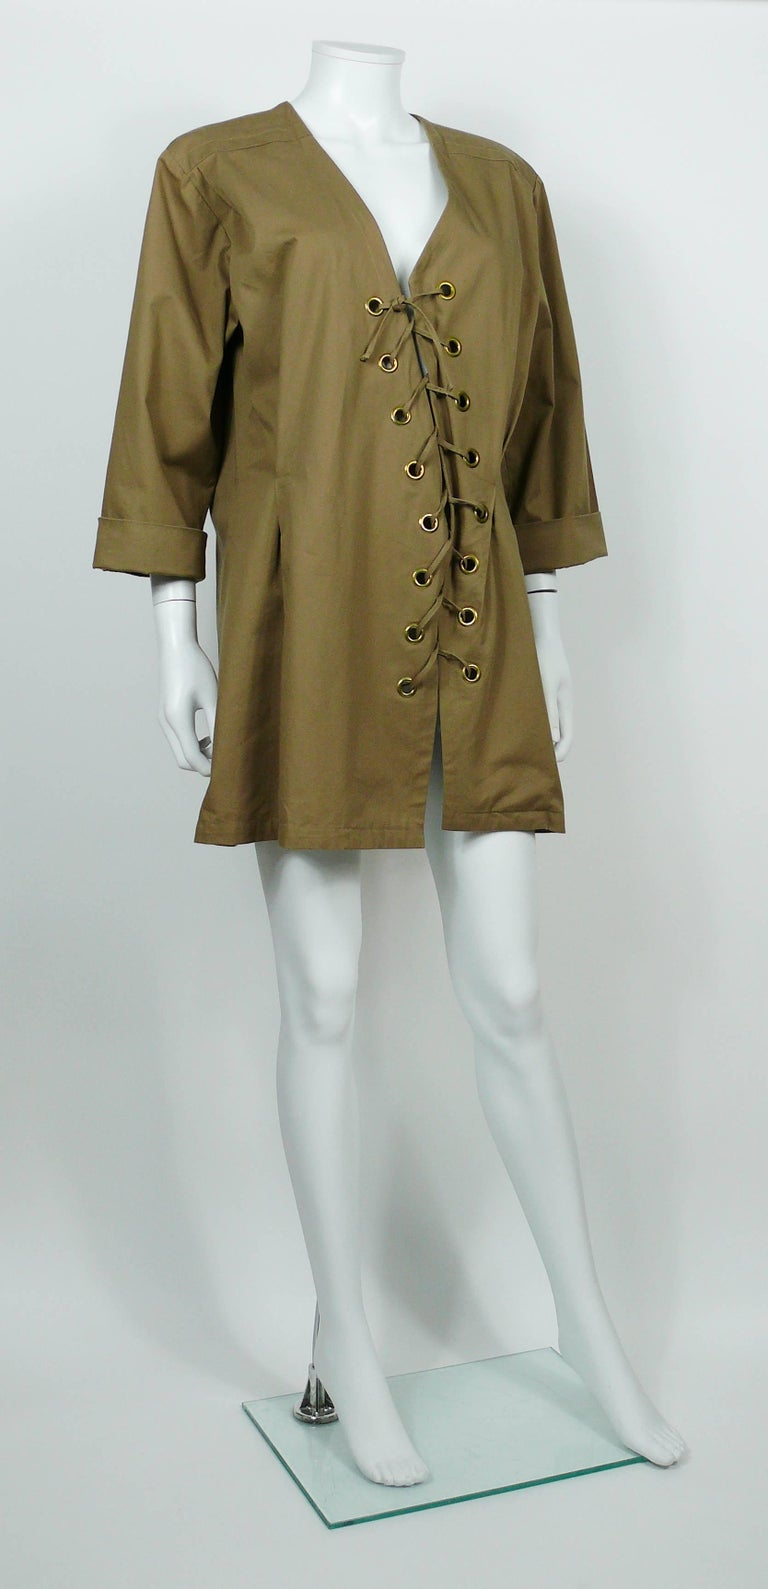 Yves Saint Laurent YSL Iconic Vintage Cotton Safari Tunic Dress, 1990s  2